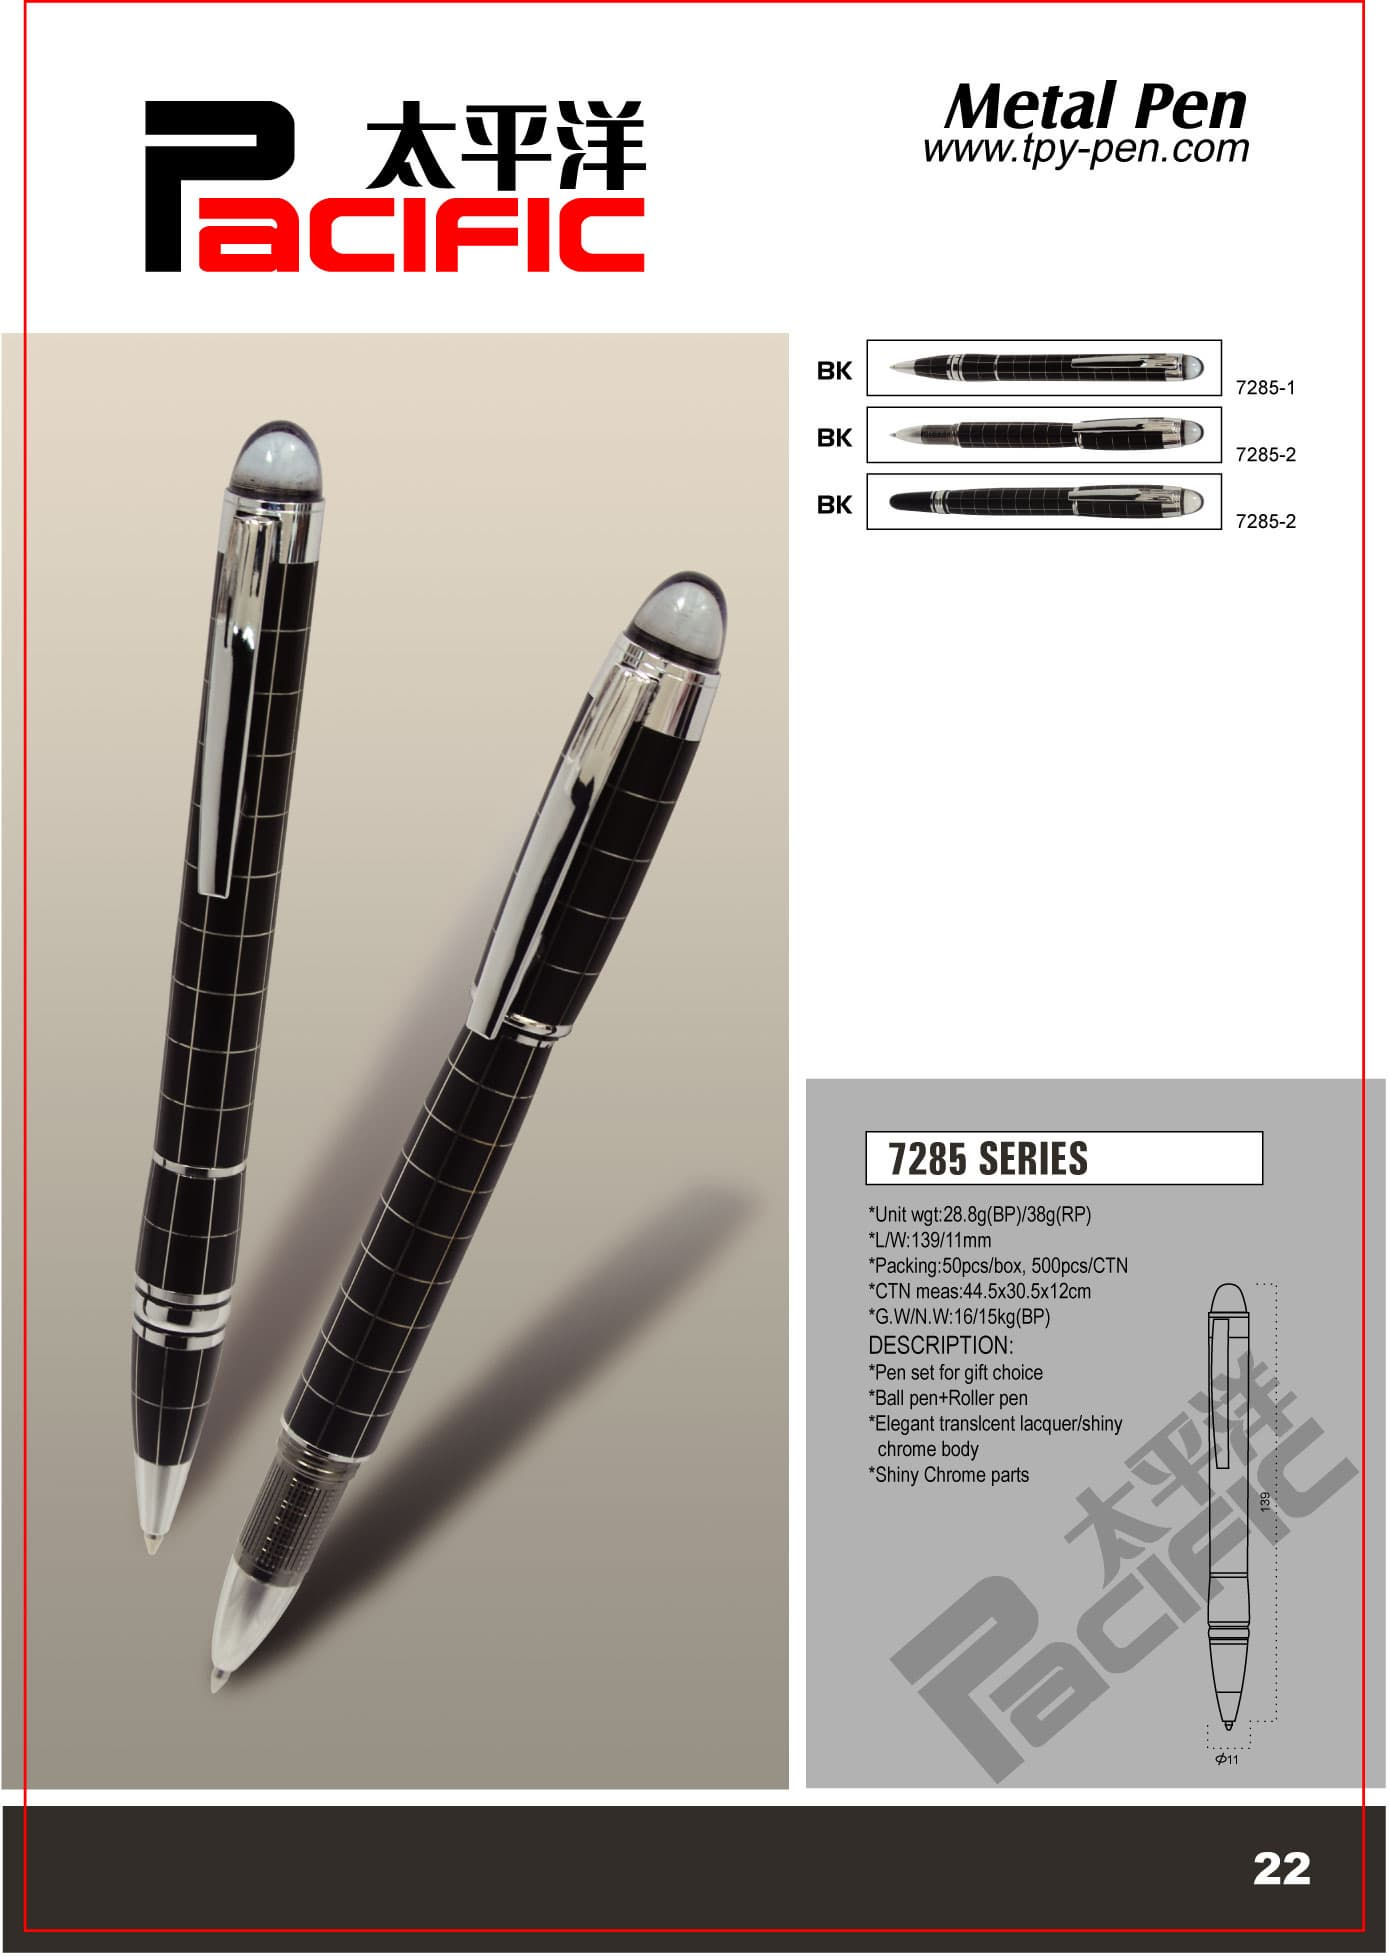 metal <strong>pen</strong>,fountain <strong>pen</strong>,ball <strong>pen</strong>,roller <strong>pen</strong>,<strong>pen</strong> <strong>set</strong>,<strong>pen</strong> item,writing instrument,<strong>gift</strong> <strong>pen</strong>7285 series